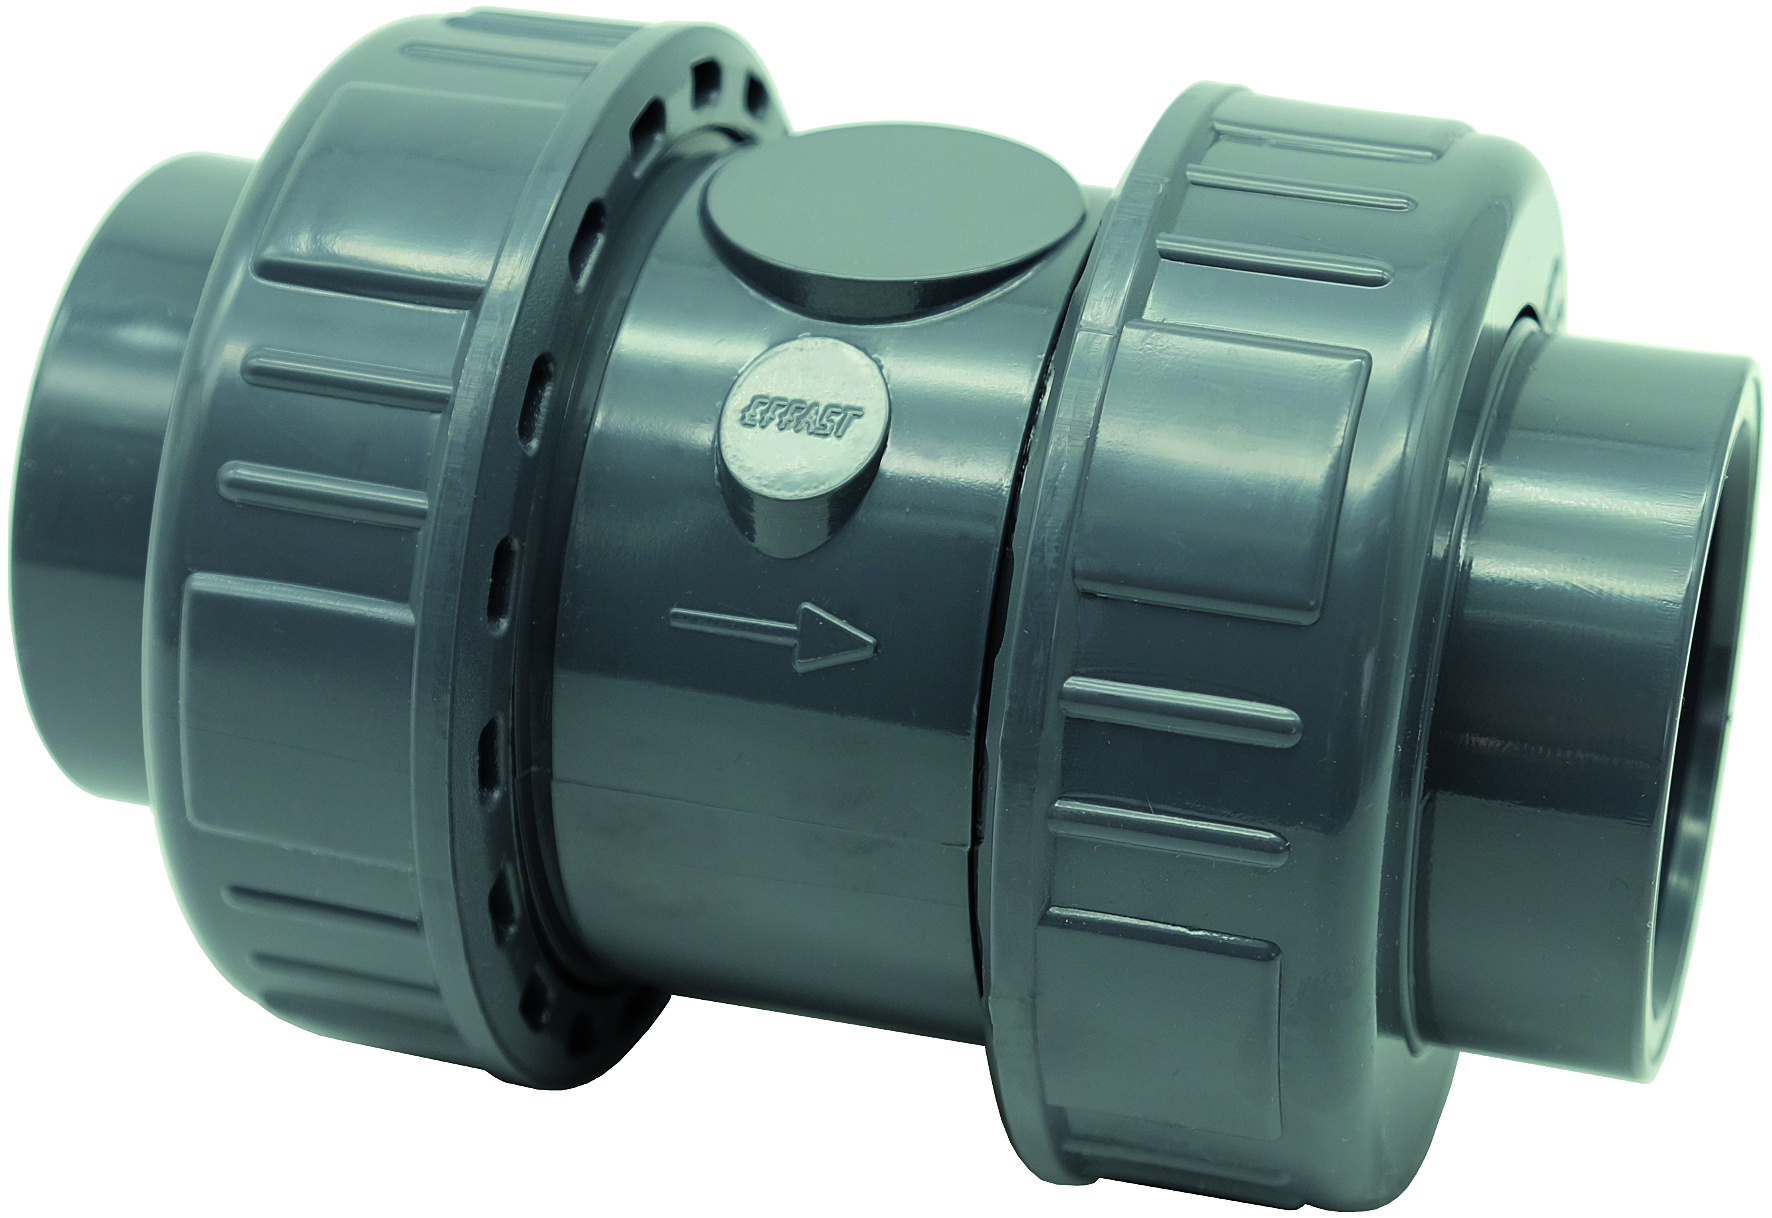 PVC-U double union spring check valve CV - EFFAST - 100% Made in Italy